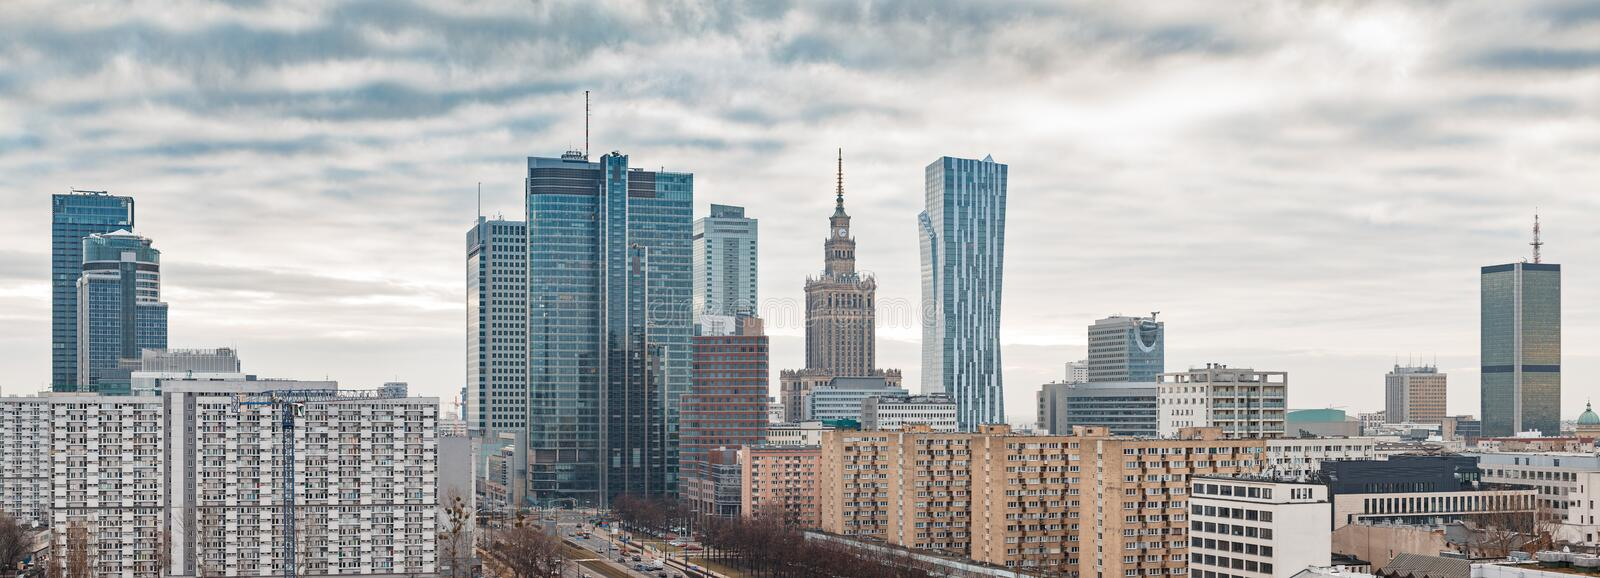 Panoramic view of Warsaw city center. On a cloudy day royalty free stock photography